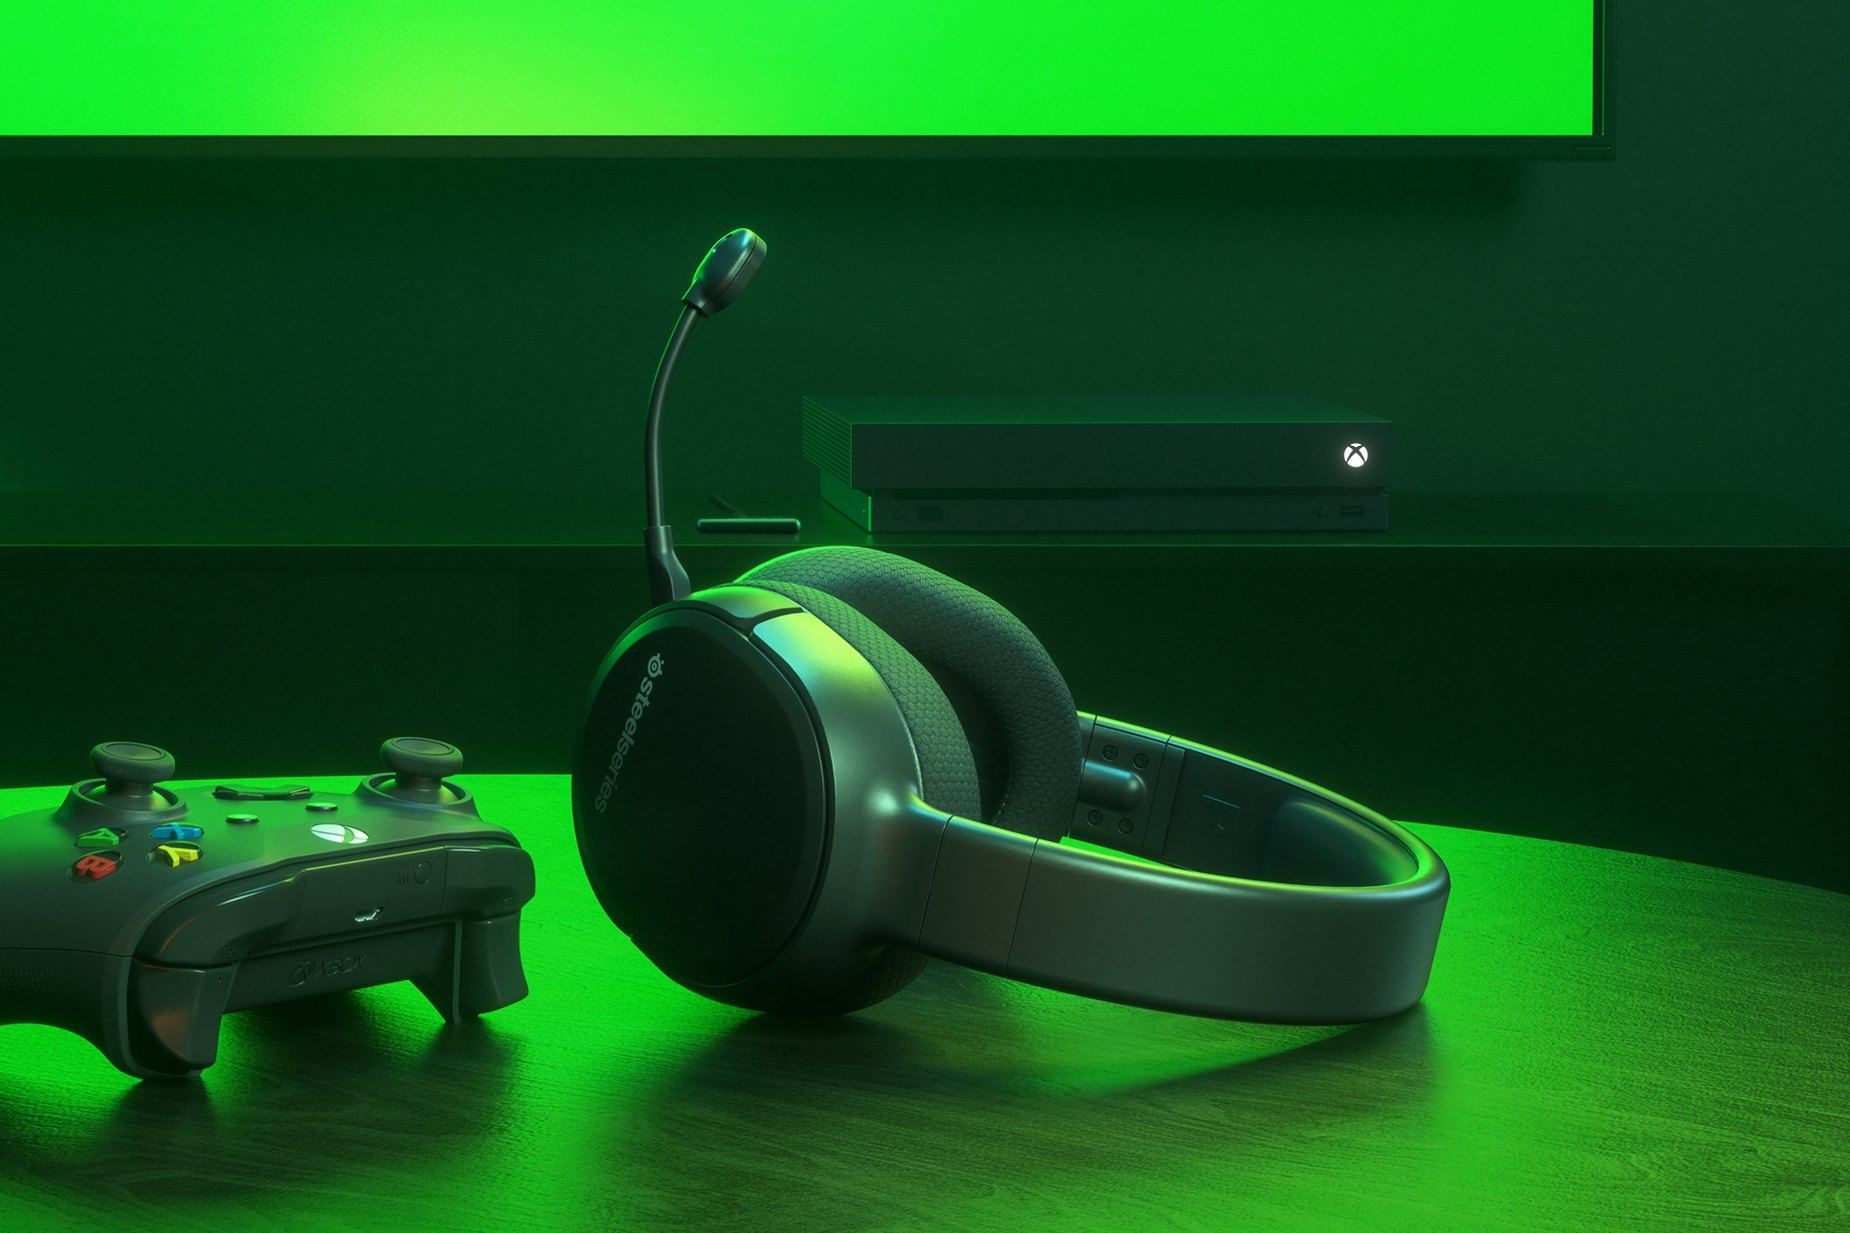 SteelSeries Arctis 1 wireless headset for Xbox sitting next to an Xbox One console